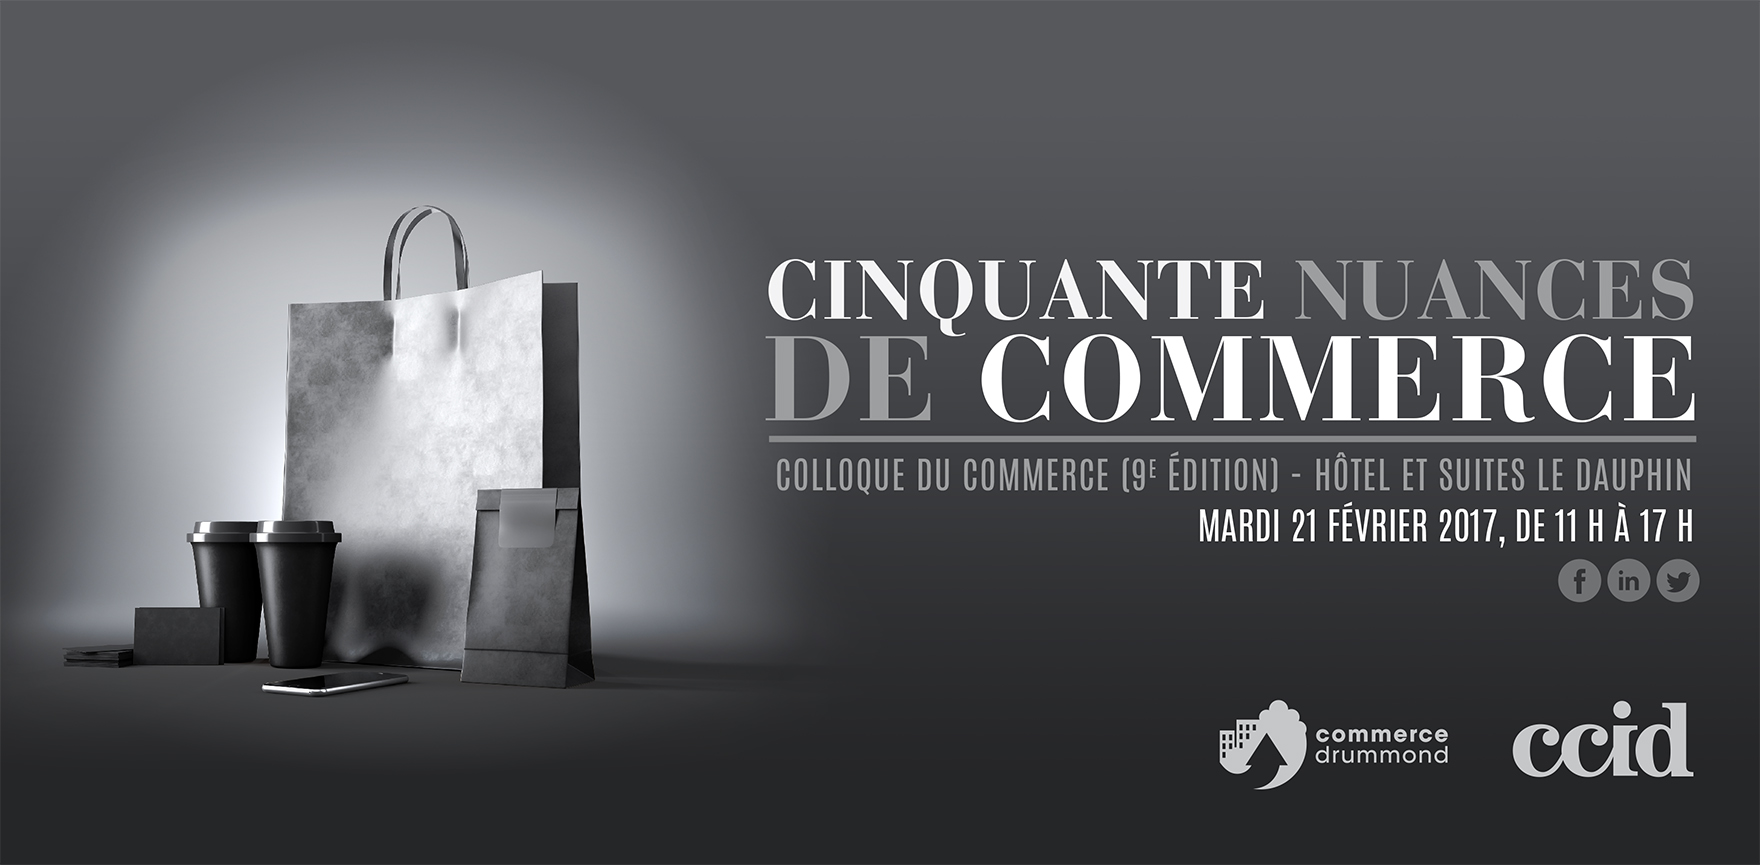 Colloque du commerce cinquante nuances de commerce for Chambre de commerce drummondville